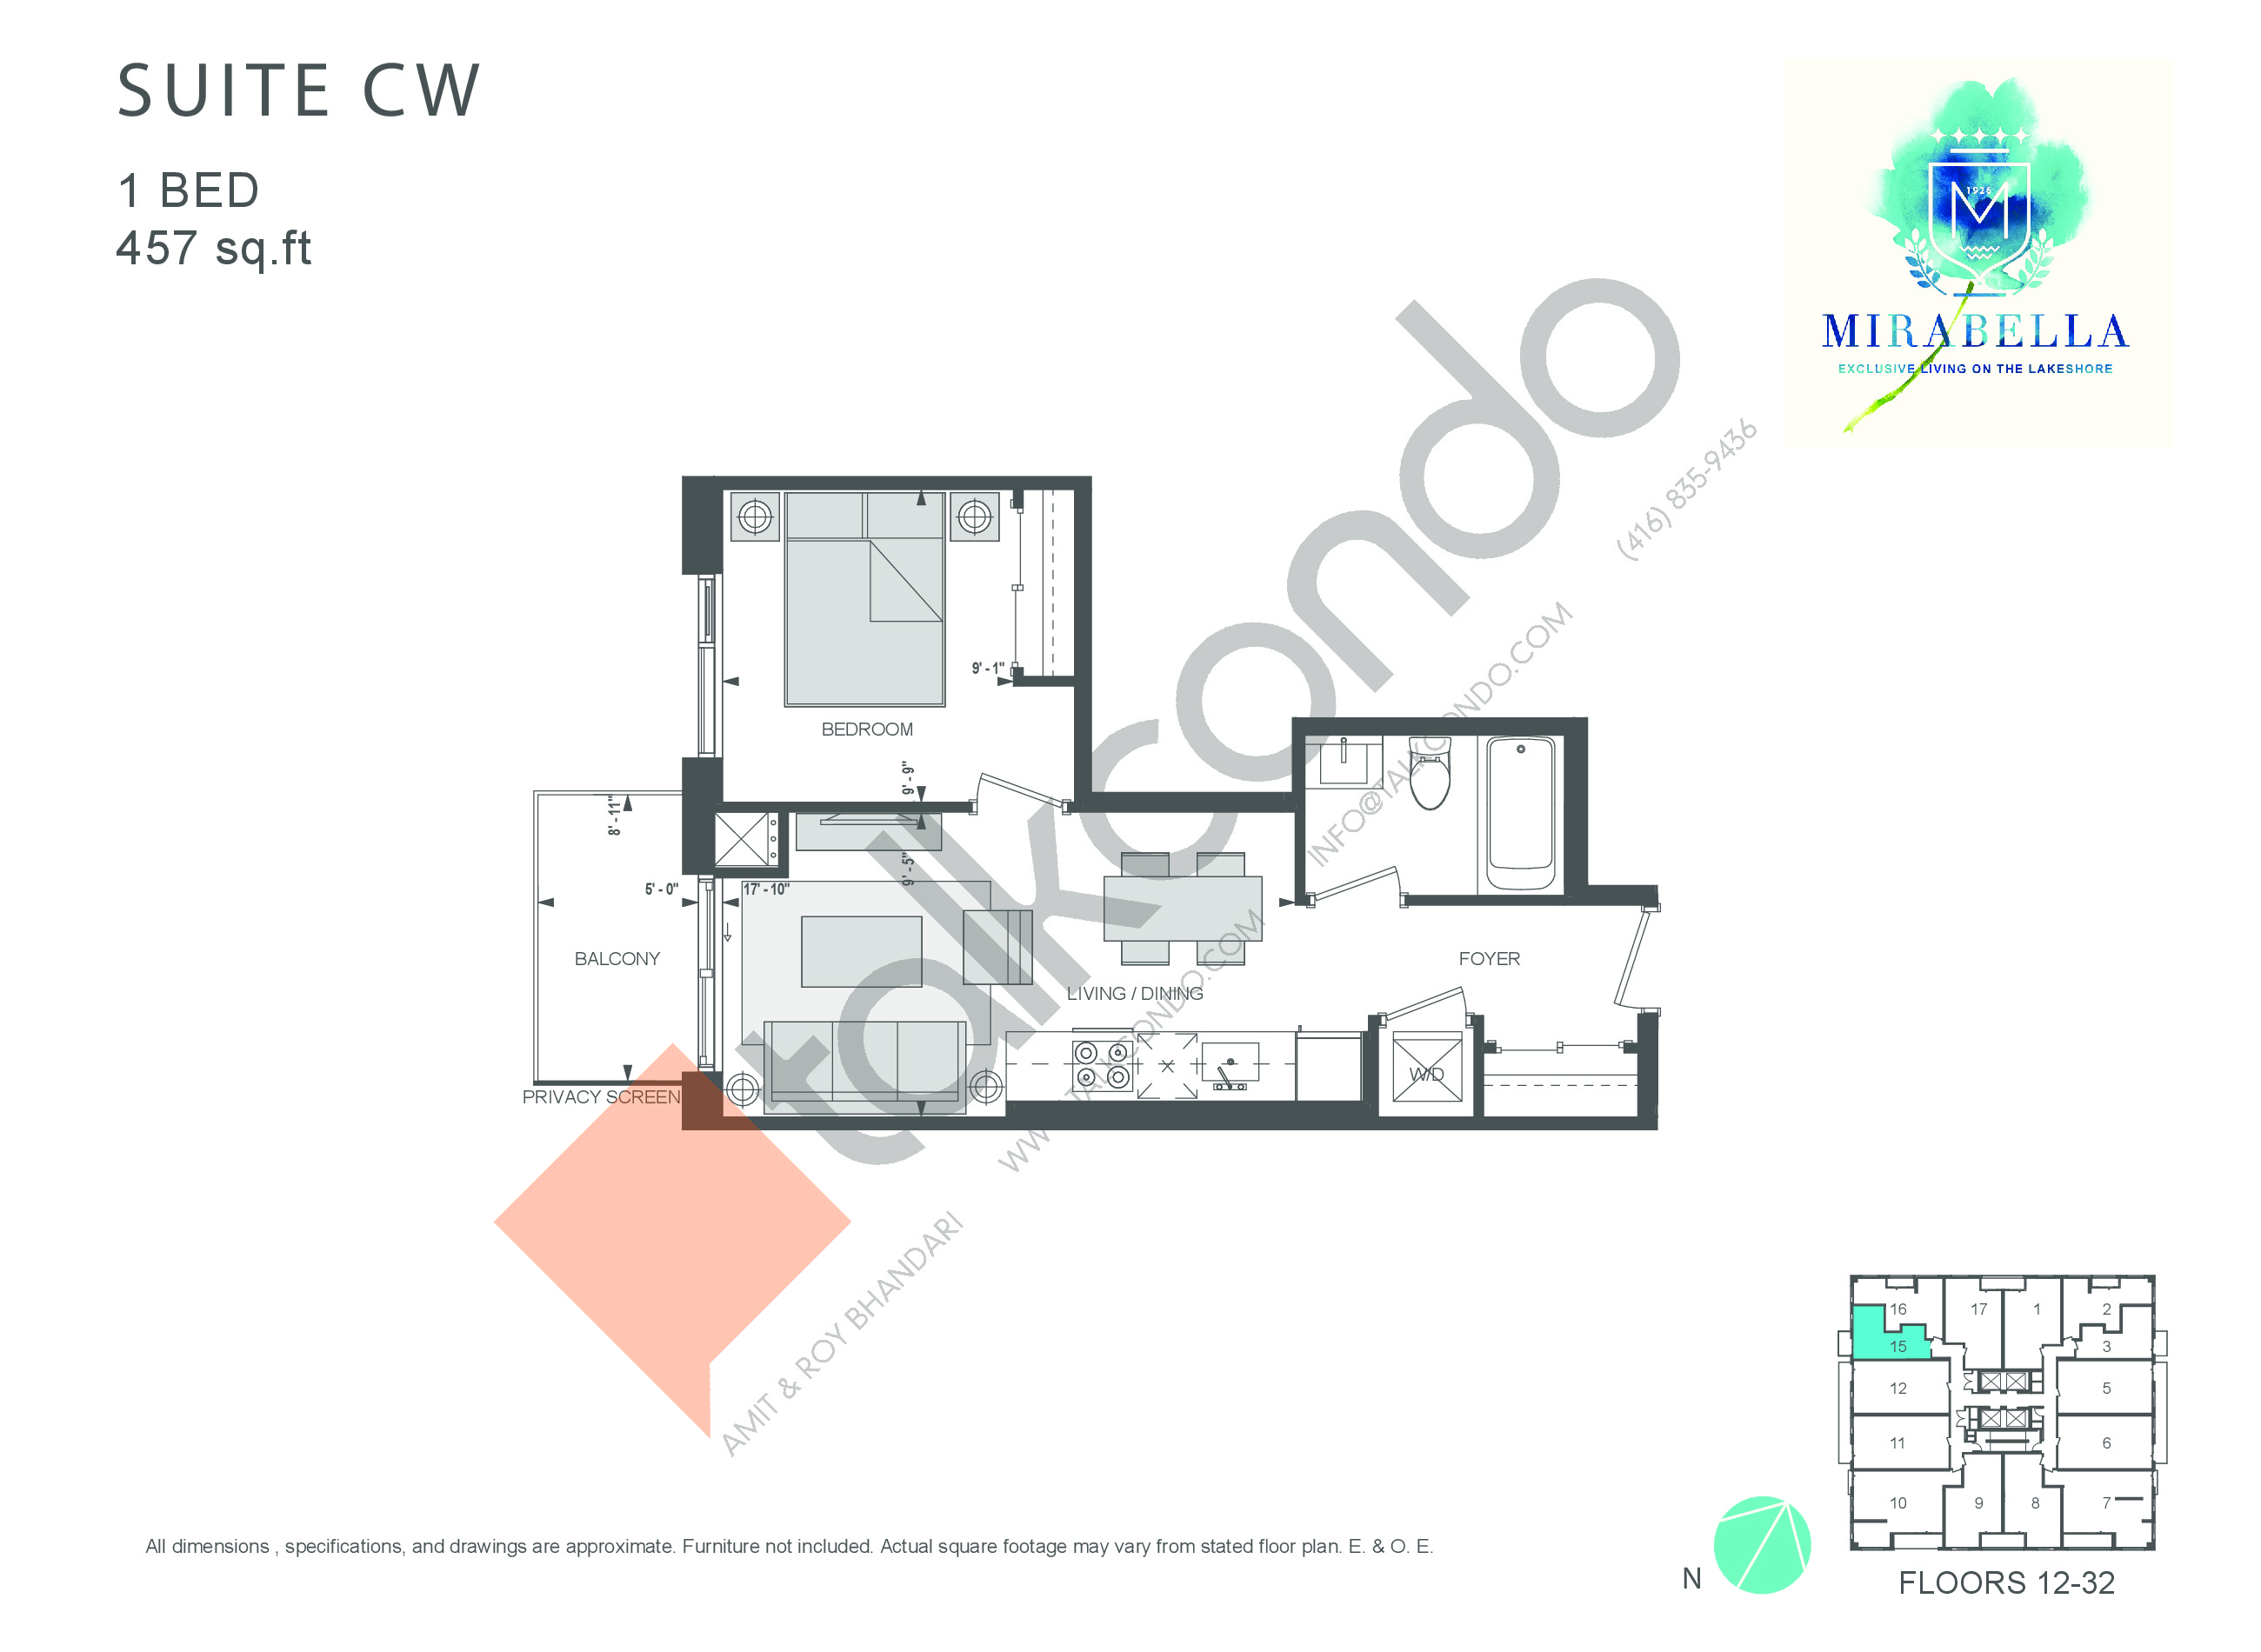 Suite CW Floor Plan at Mirabella Luxury Condos East Tower - 457 sq.ft